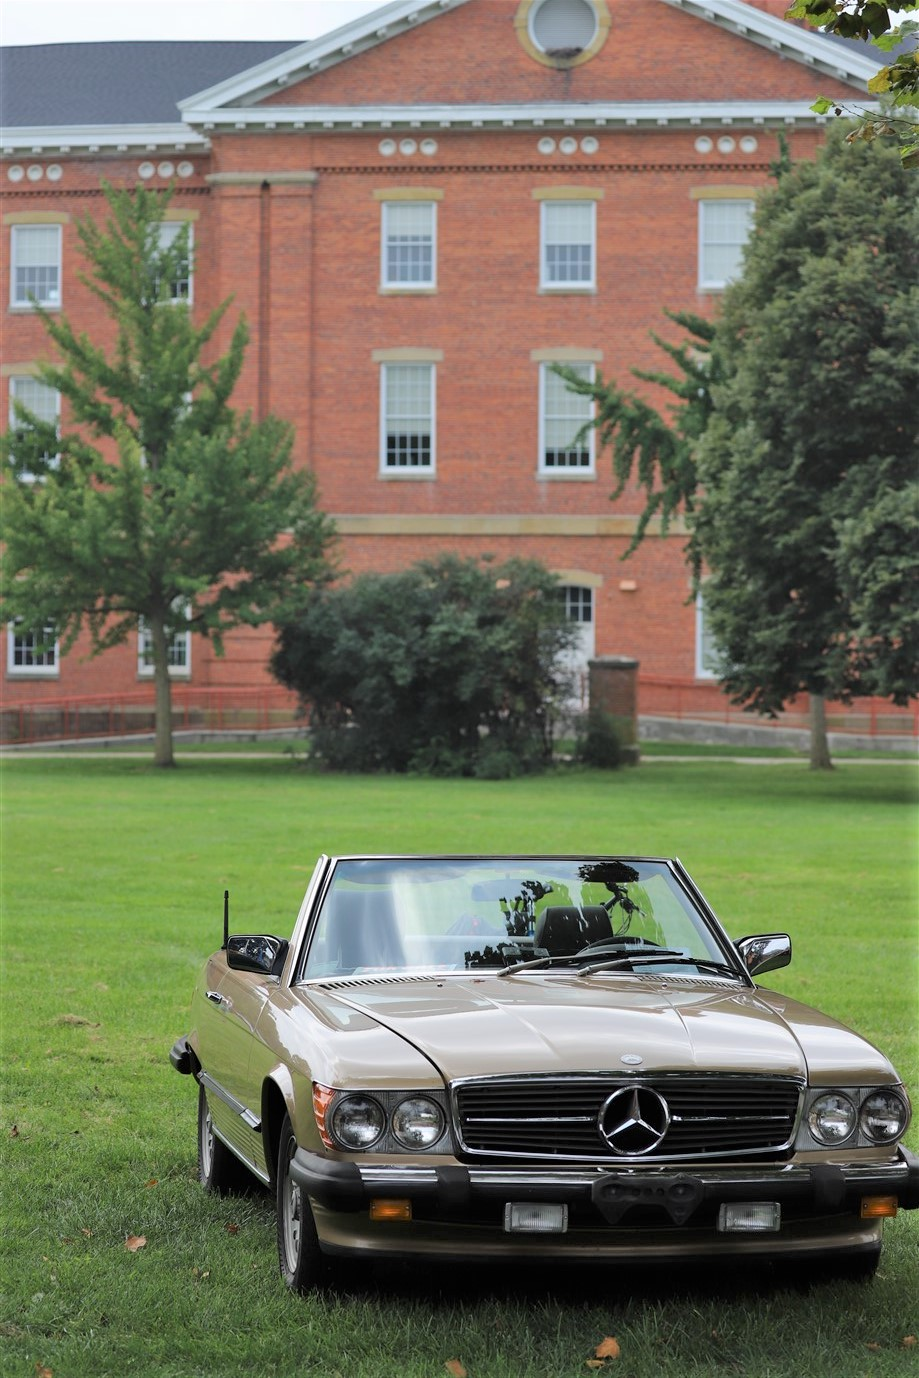 Columbus – August 2018 – Classic Cars in a HistoricSetting